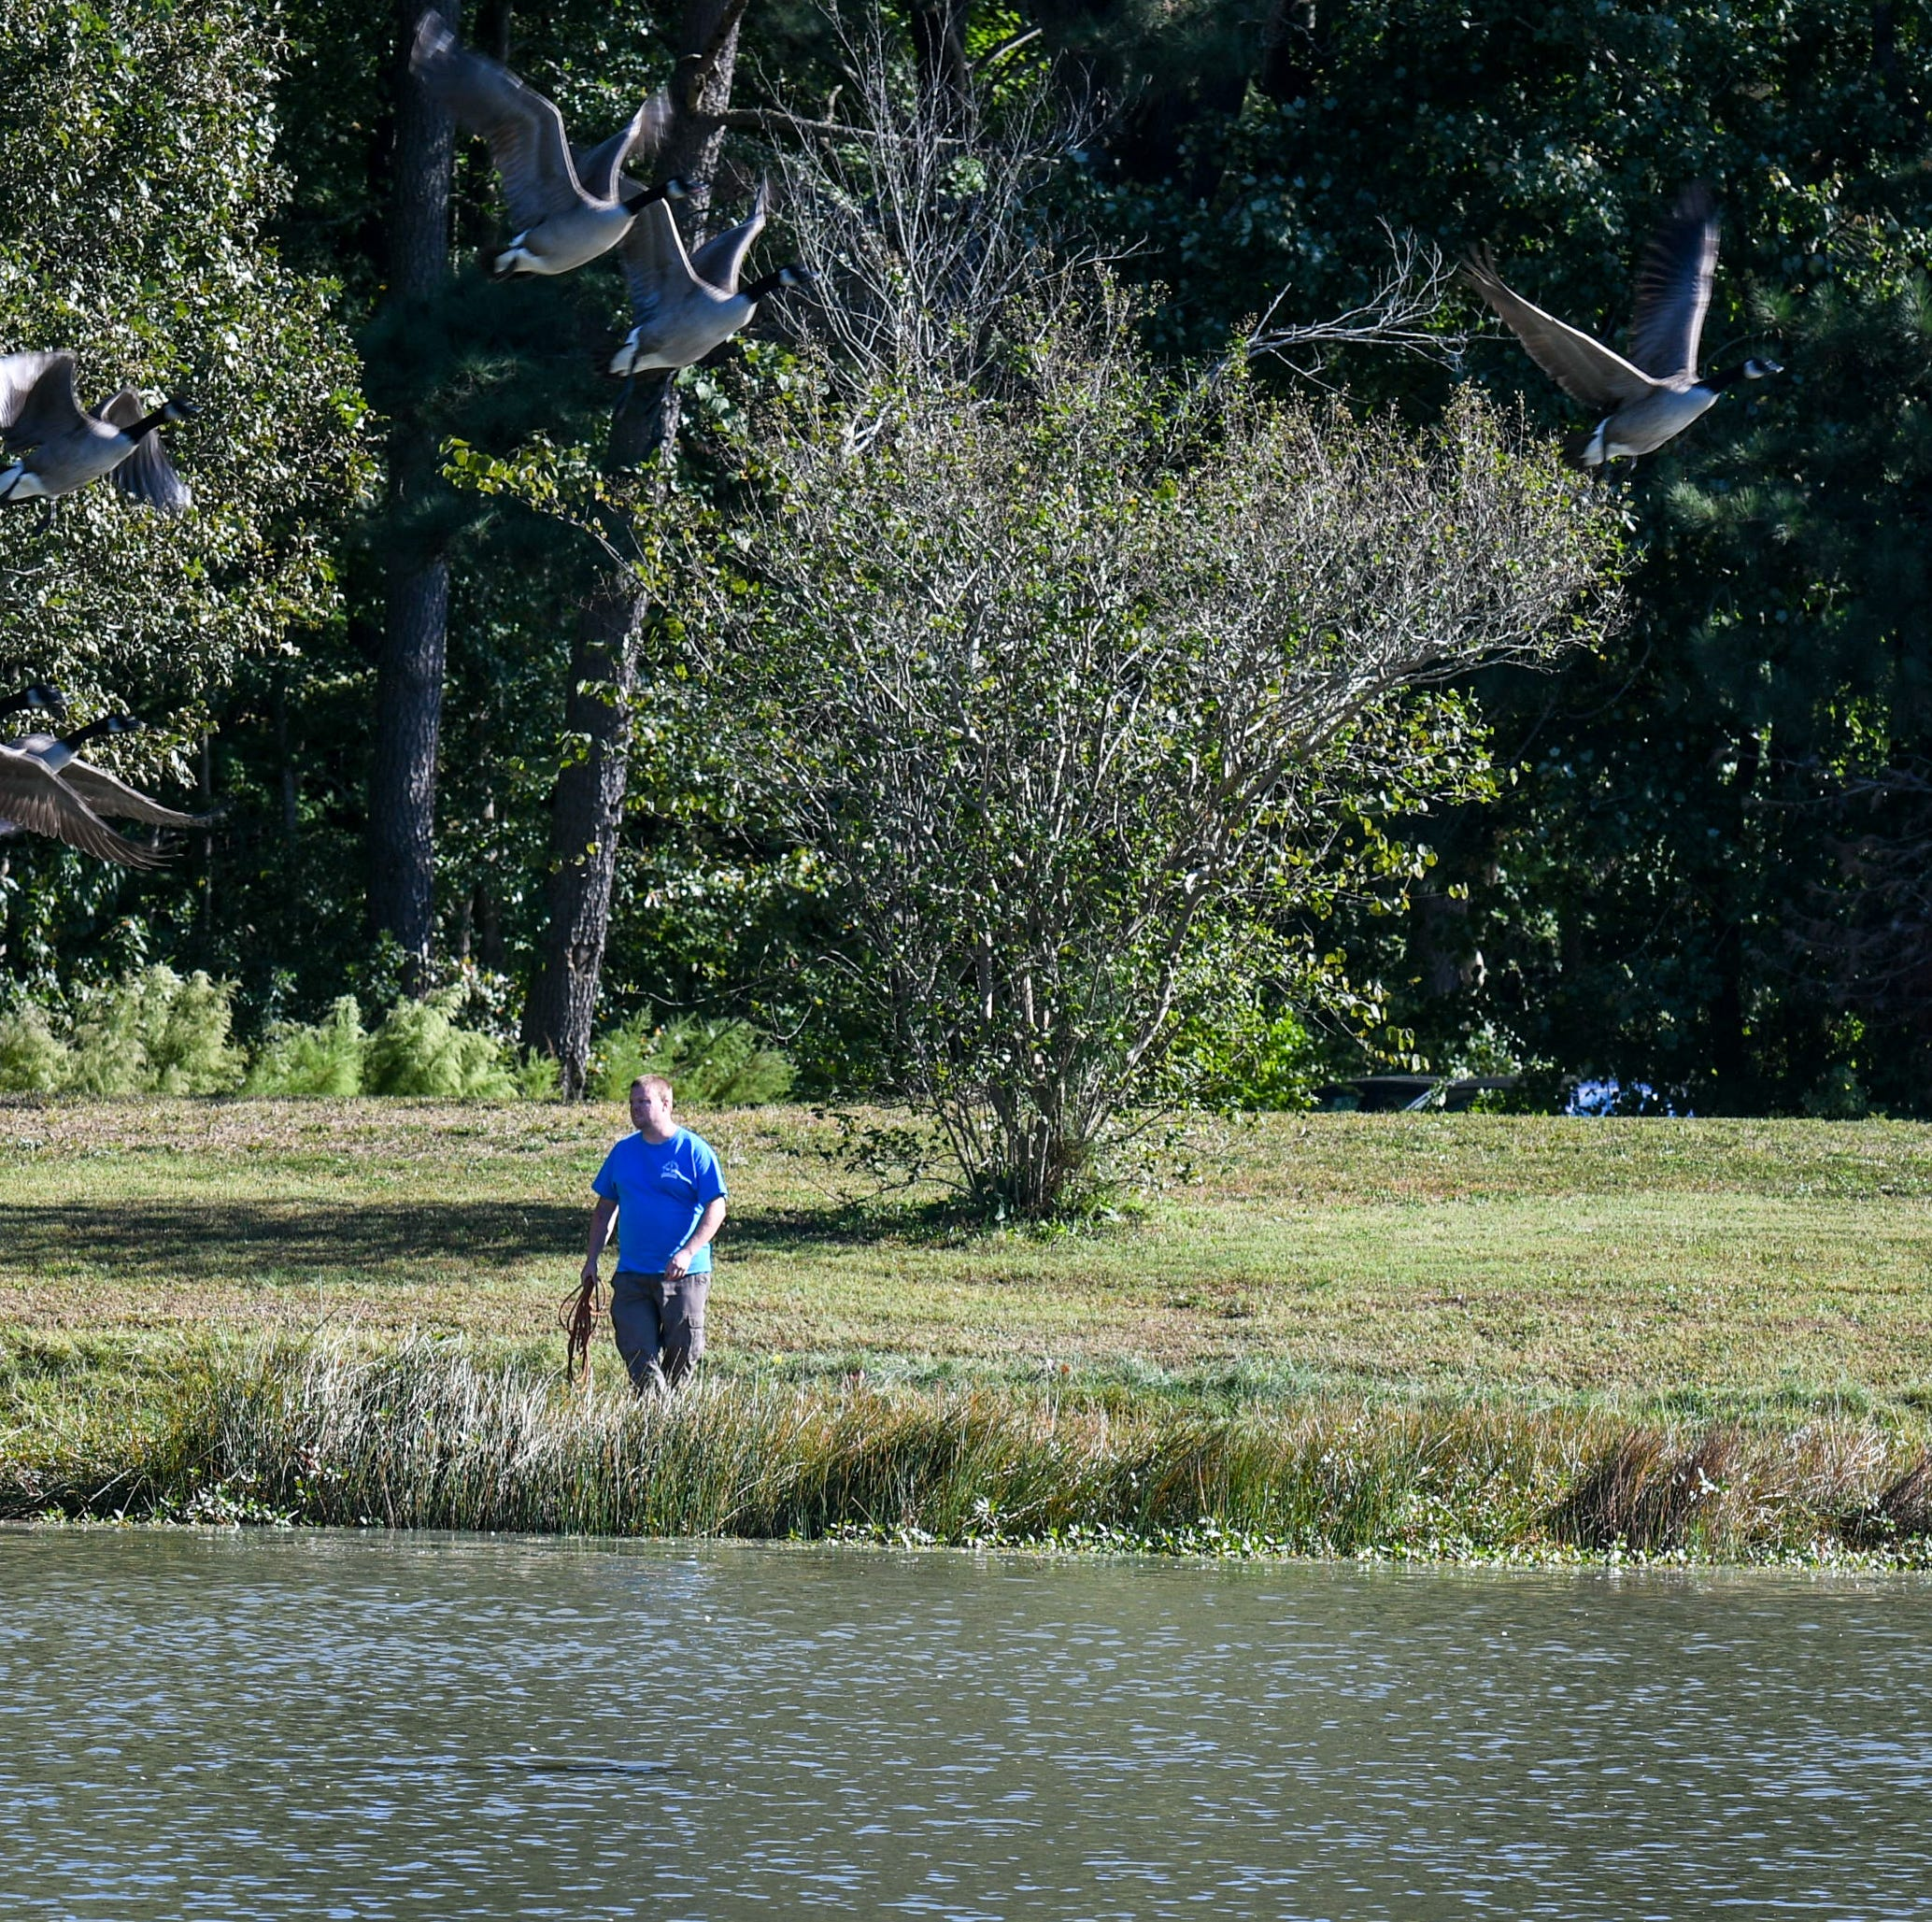 Ocean Pines brings in dogs to chase unshakeable geese population